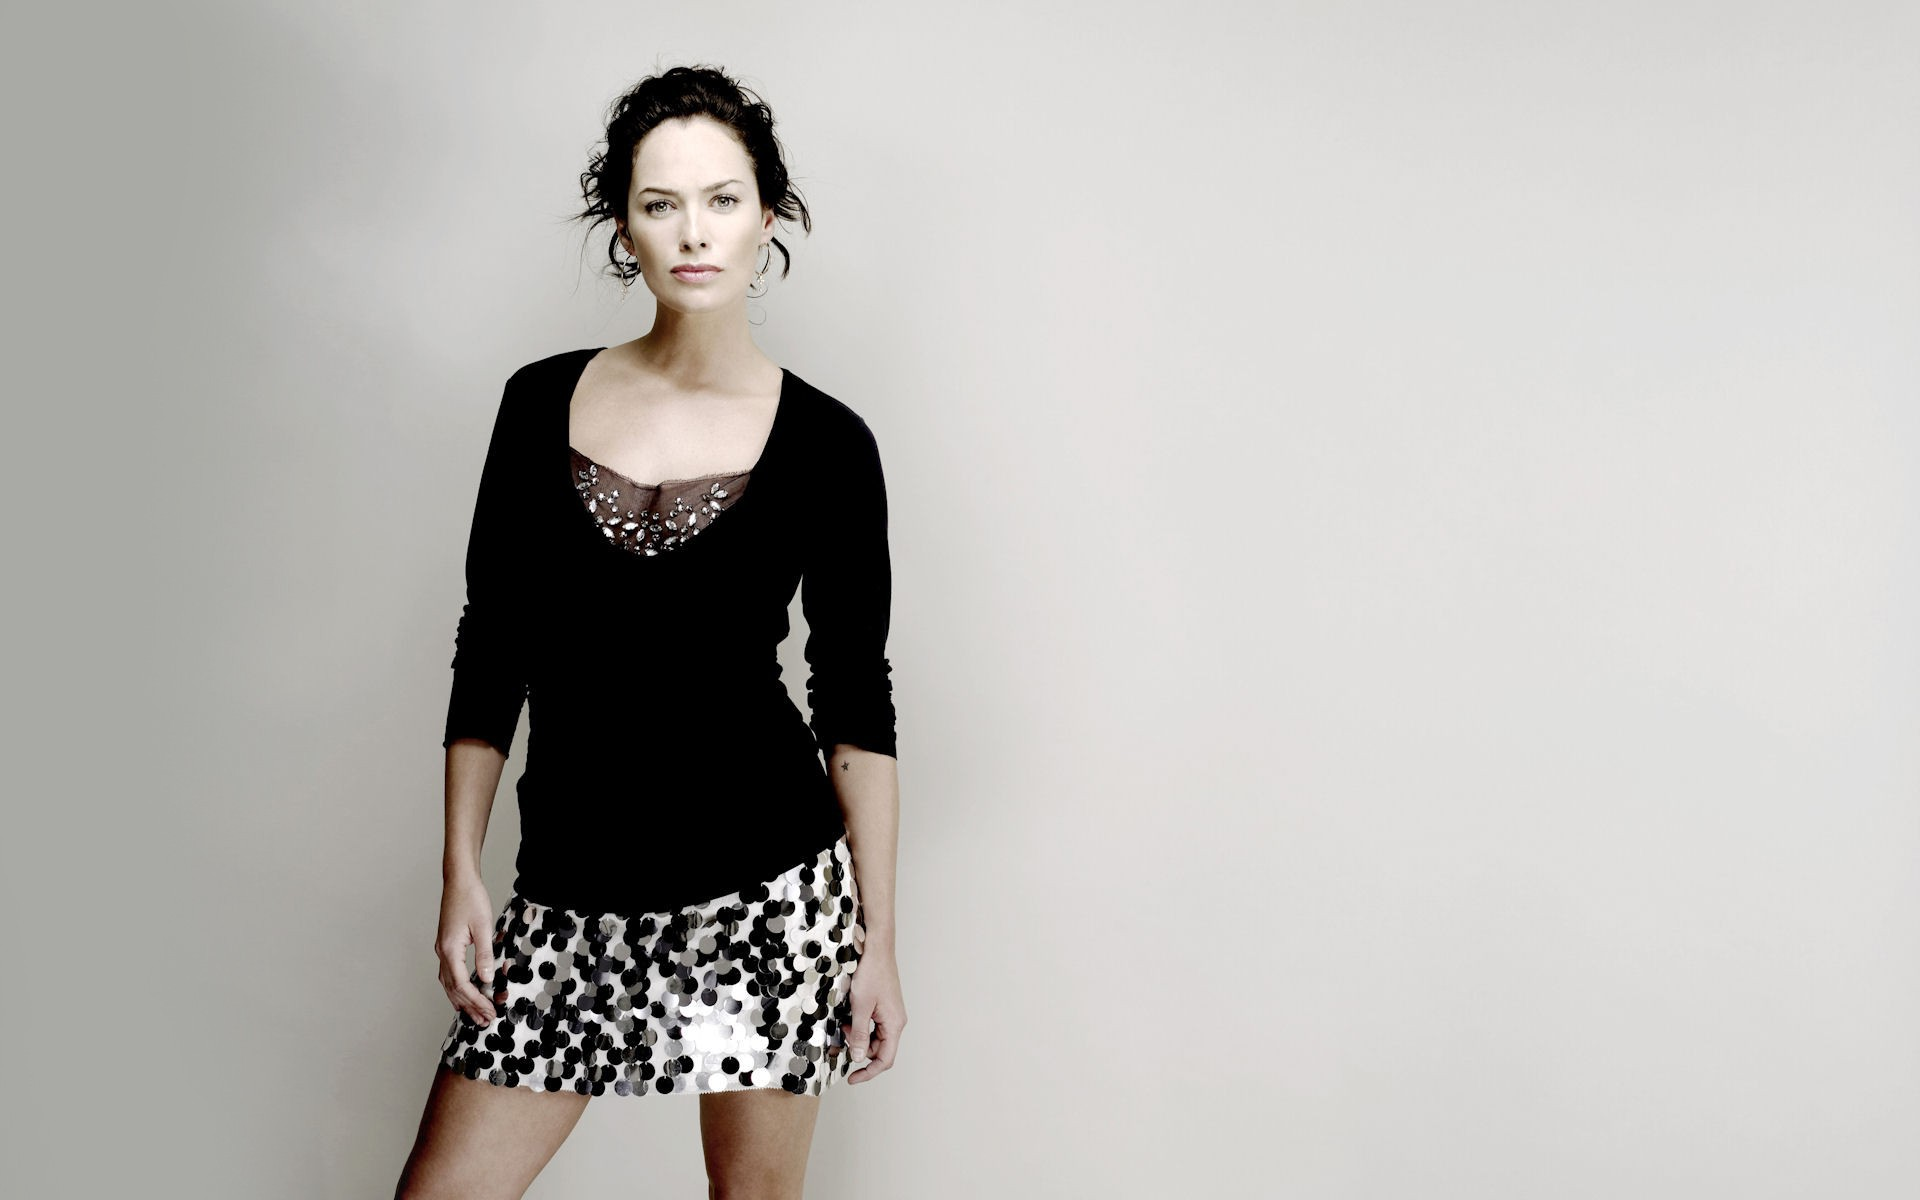 Beautiful Lena Headey